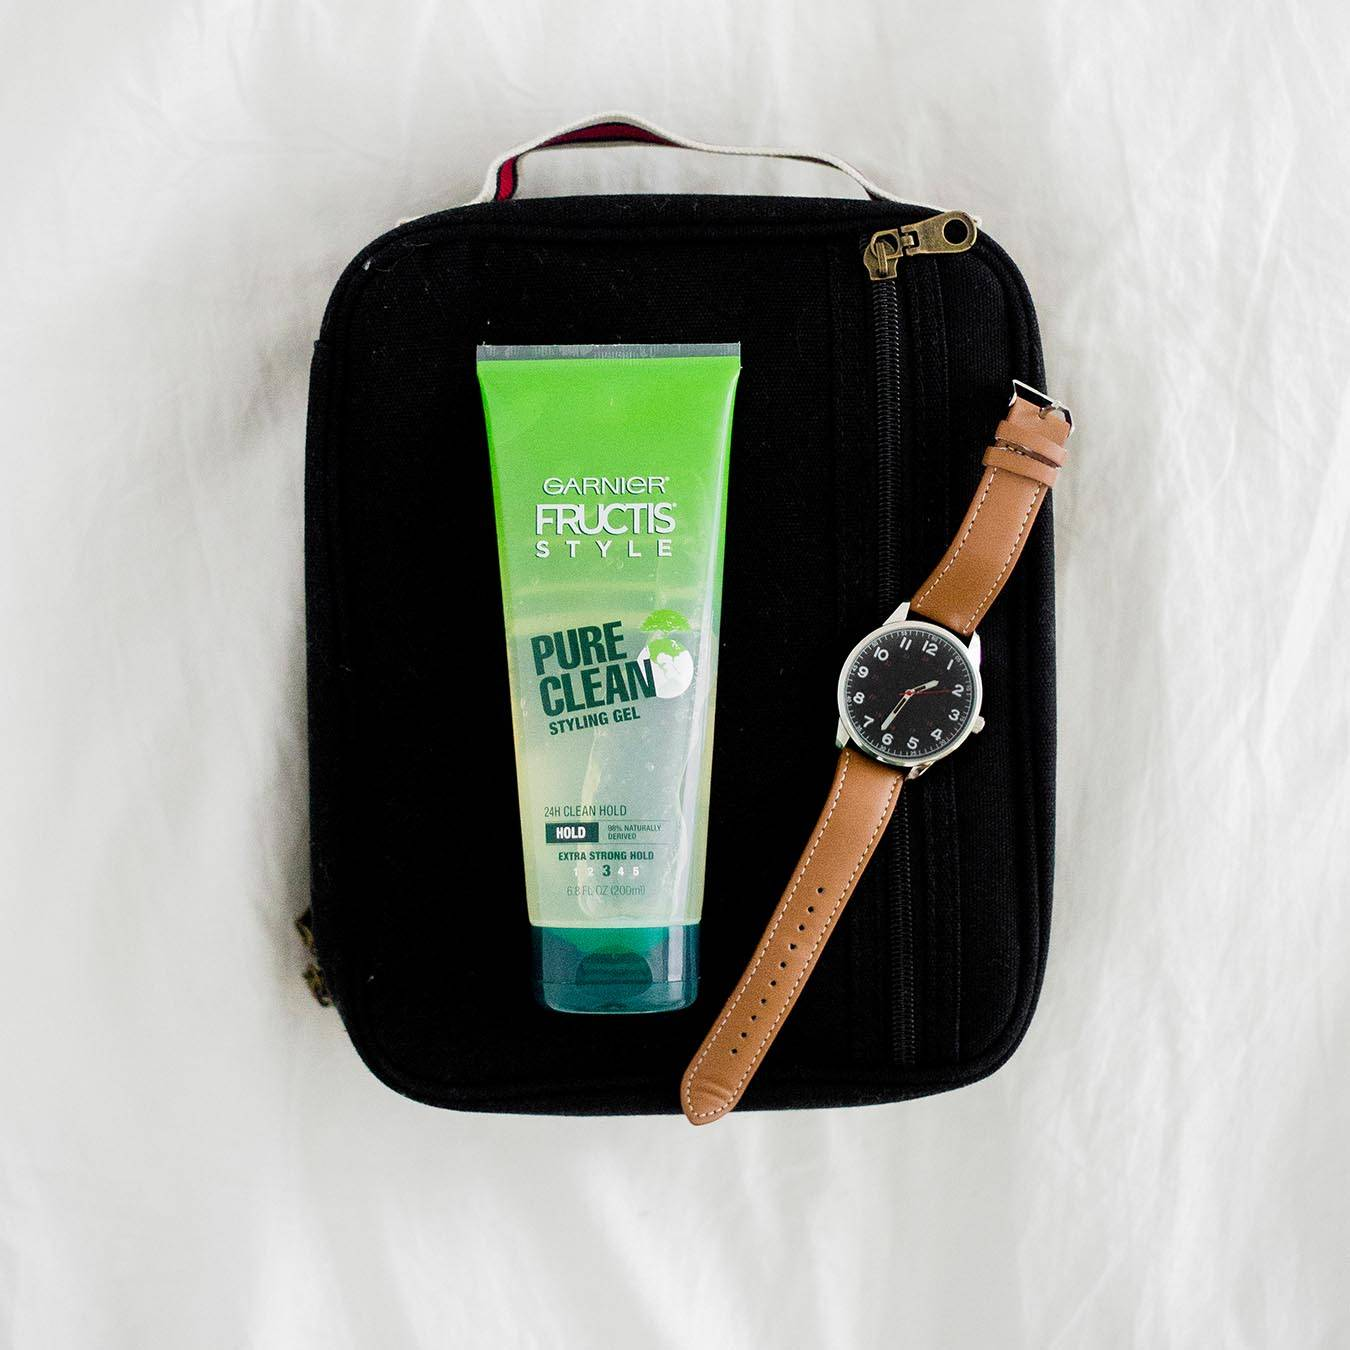 Garnier Fructis Style Pure Clean Styling Gel next to a watch with a black face and brown band on a black travel bag on white cloth.